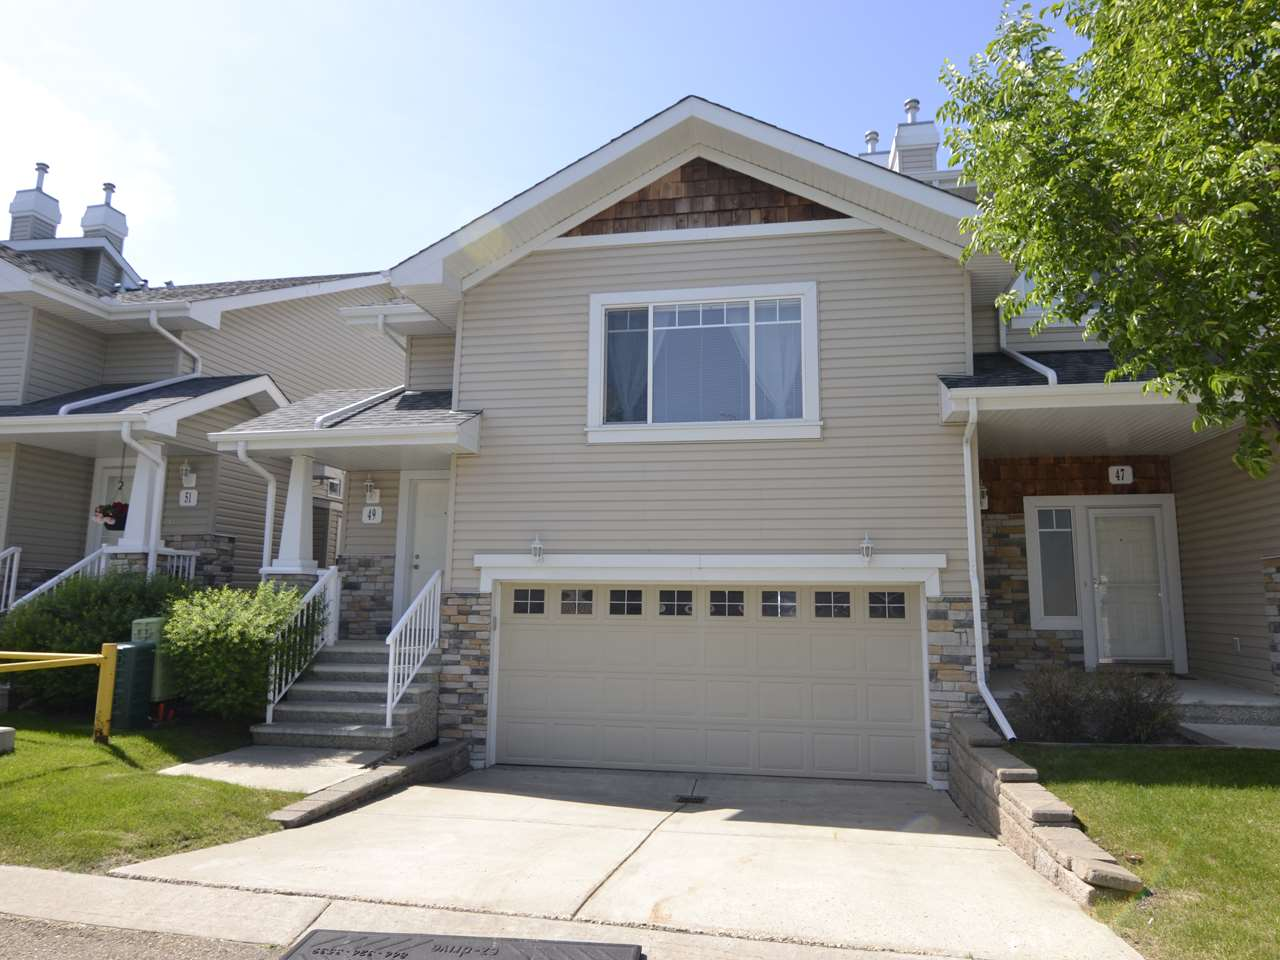 This townhome in Edmonton's South West is so bright and inviting you won't want to leave! Located just minutes from the Terwillegar Rec Centre, Currents of Windermere, and the Henday, this lovely home has a layout you?ll love - main floor is home to open concept living, kitchen, and dining area, complete with 9' ceilings, built-in desk, fireplace, hardwood floors, and walk-in pantry; it also features main floor laundry and guest bath, and a large master suite with vaulted ceilings, his and hers closets, and ensuite bath. The lower level adds two more bedrooms with large windows to your space, lots of storage, and an additional full bath. The double garage is quite large and one of your favorite places this summer is sure to be the patio and deck - whether you love to BBQ or lounge outside, this is the perfect spot to get some sun! This unit offers the best of both worlds, no exterior maintenance, and yet nearly 1500 square feet of developed living space! Don't miss it!